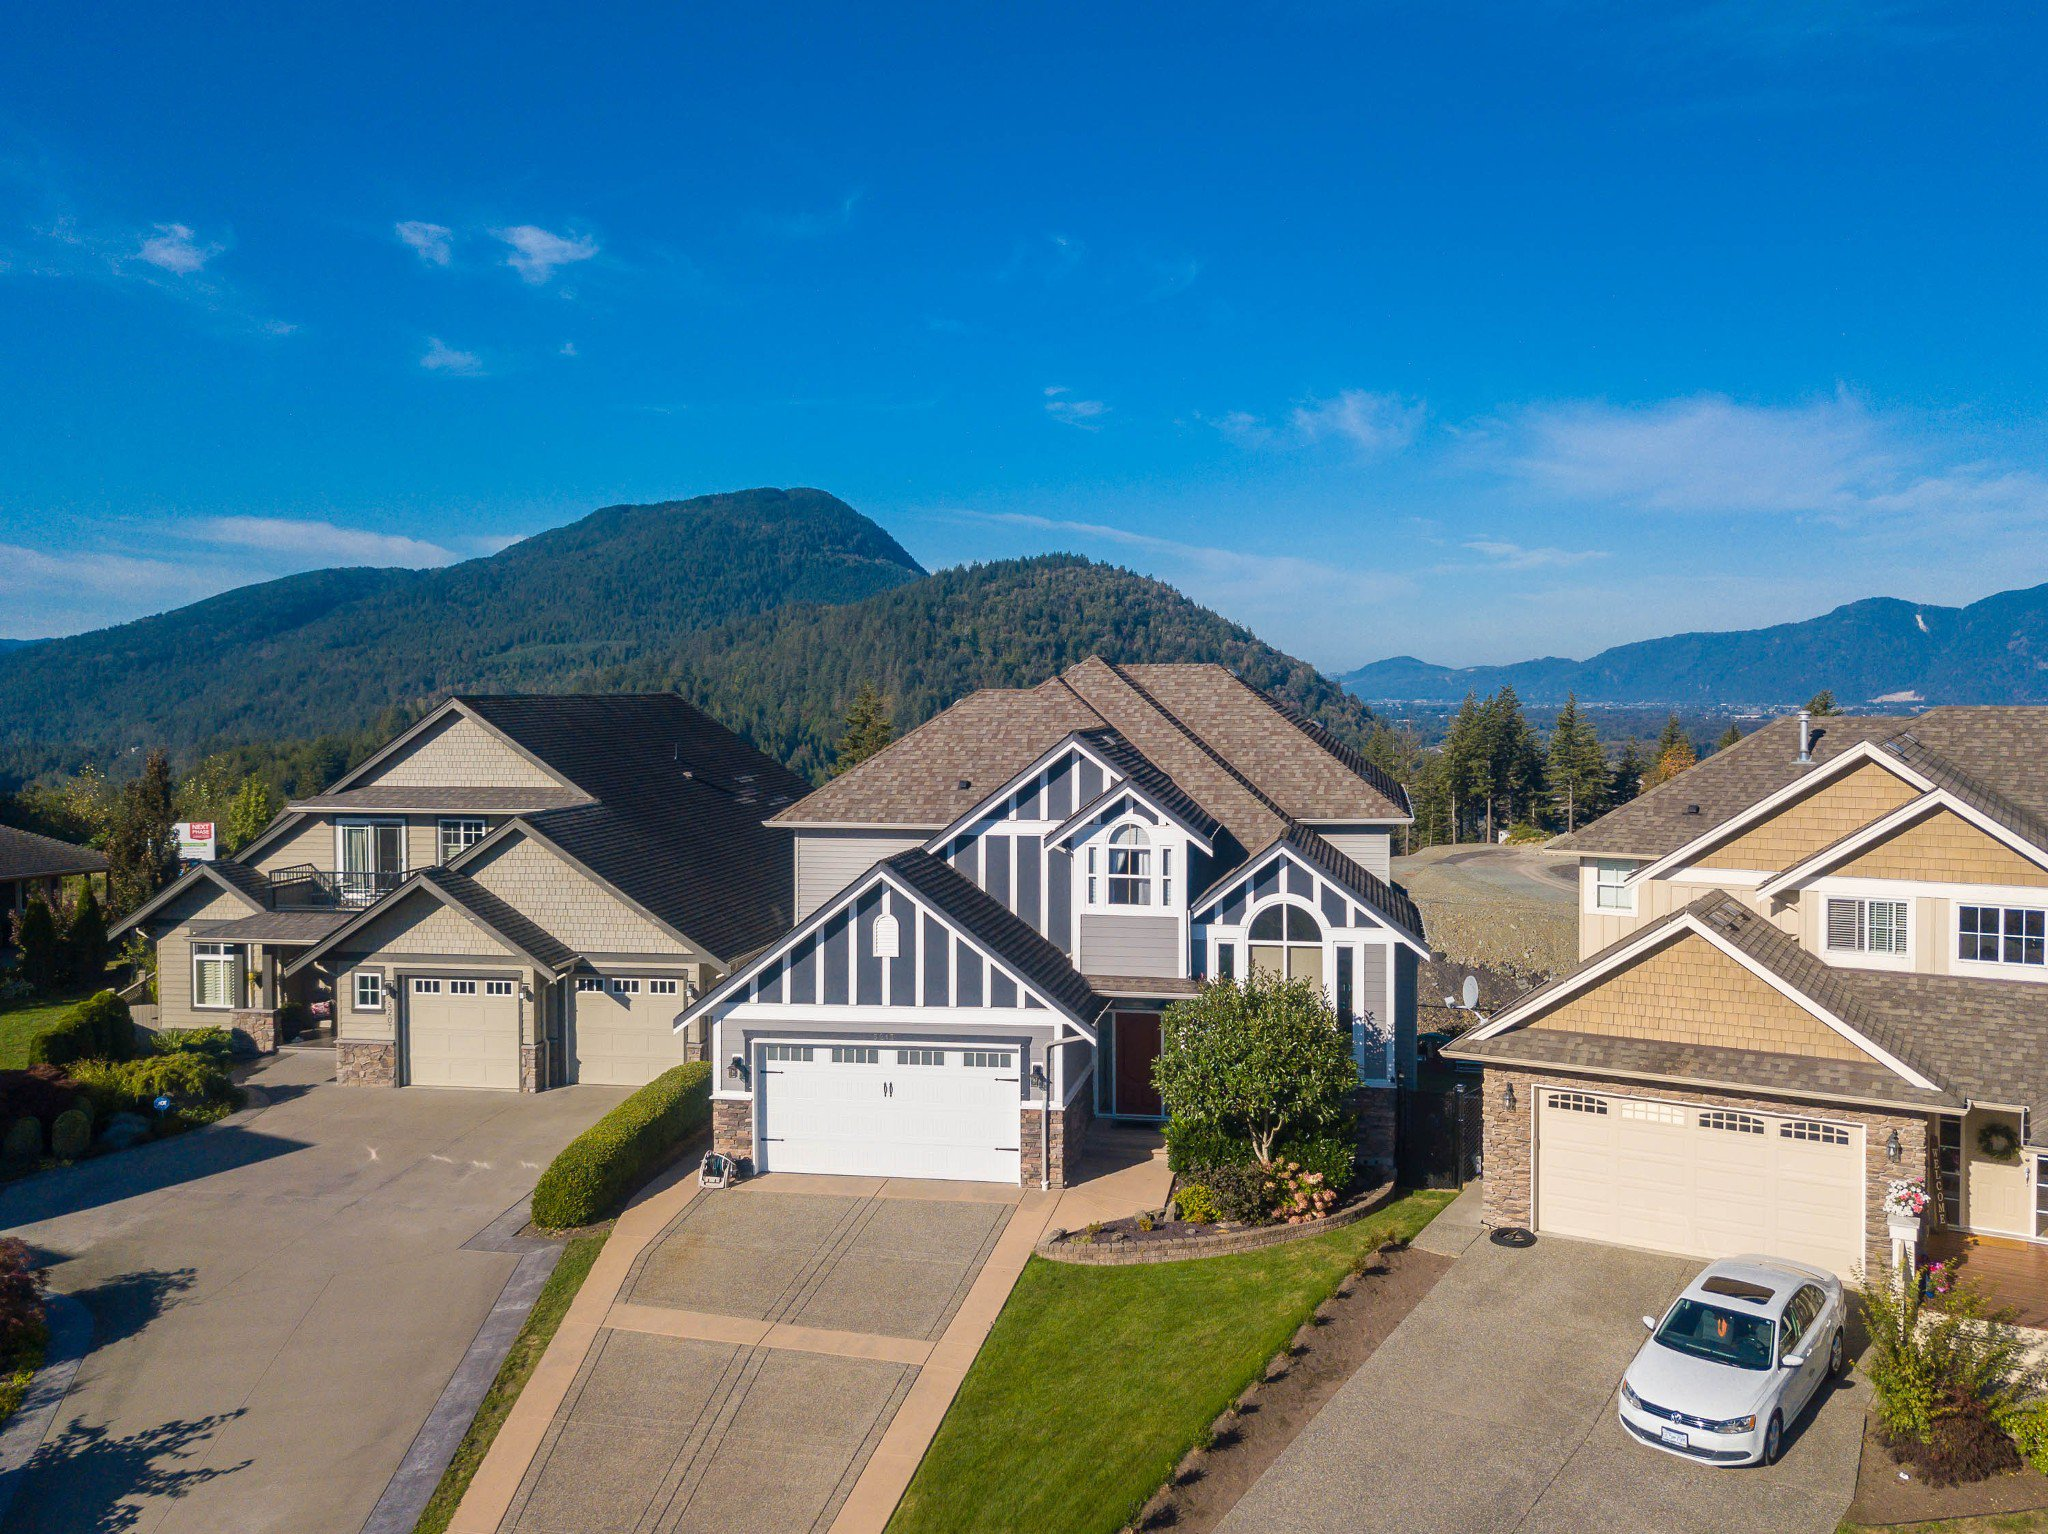 Welcome to 5213 Demontigny Court! This beautiful home is located in Sherwood Estates on the top of Promontory with Cultus Lake and Panoramic Western Sunset views. Relax on your back porch or in the yard with the kids and feel at home!